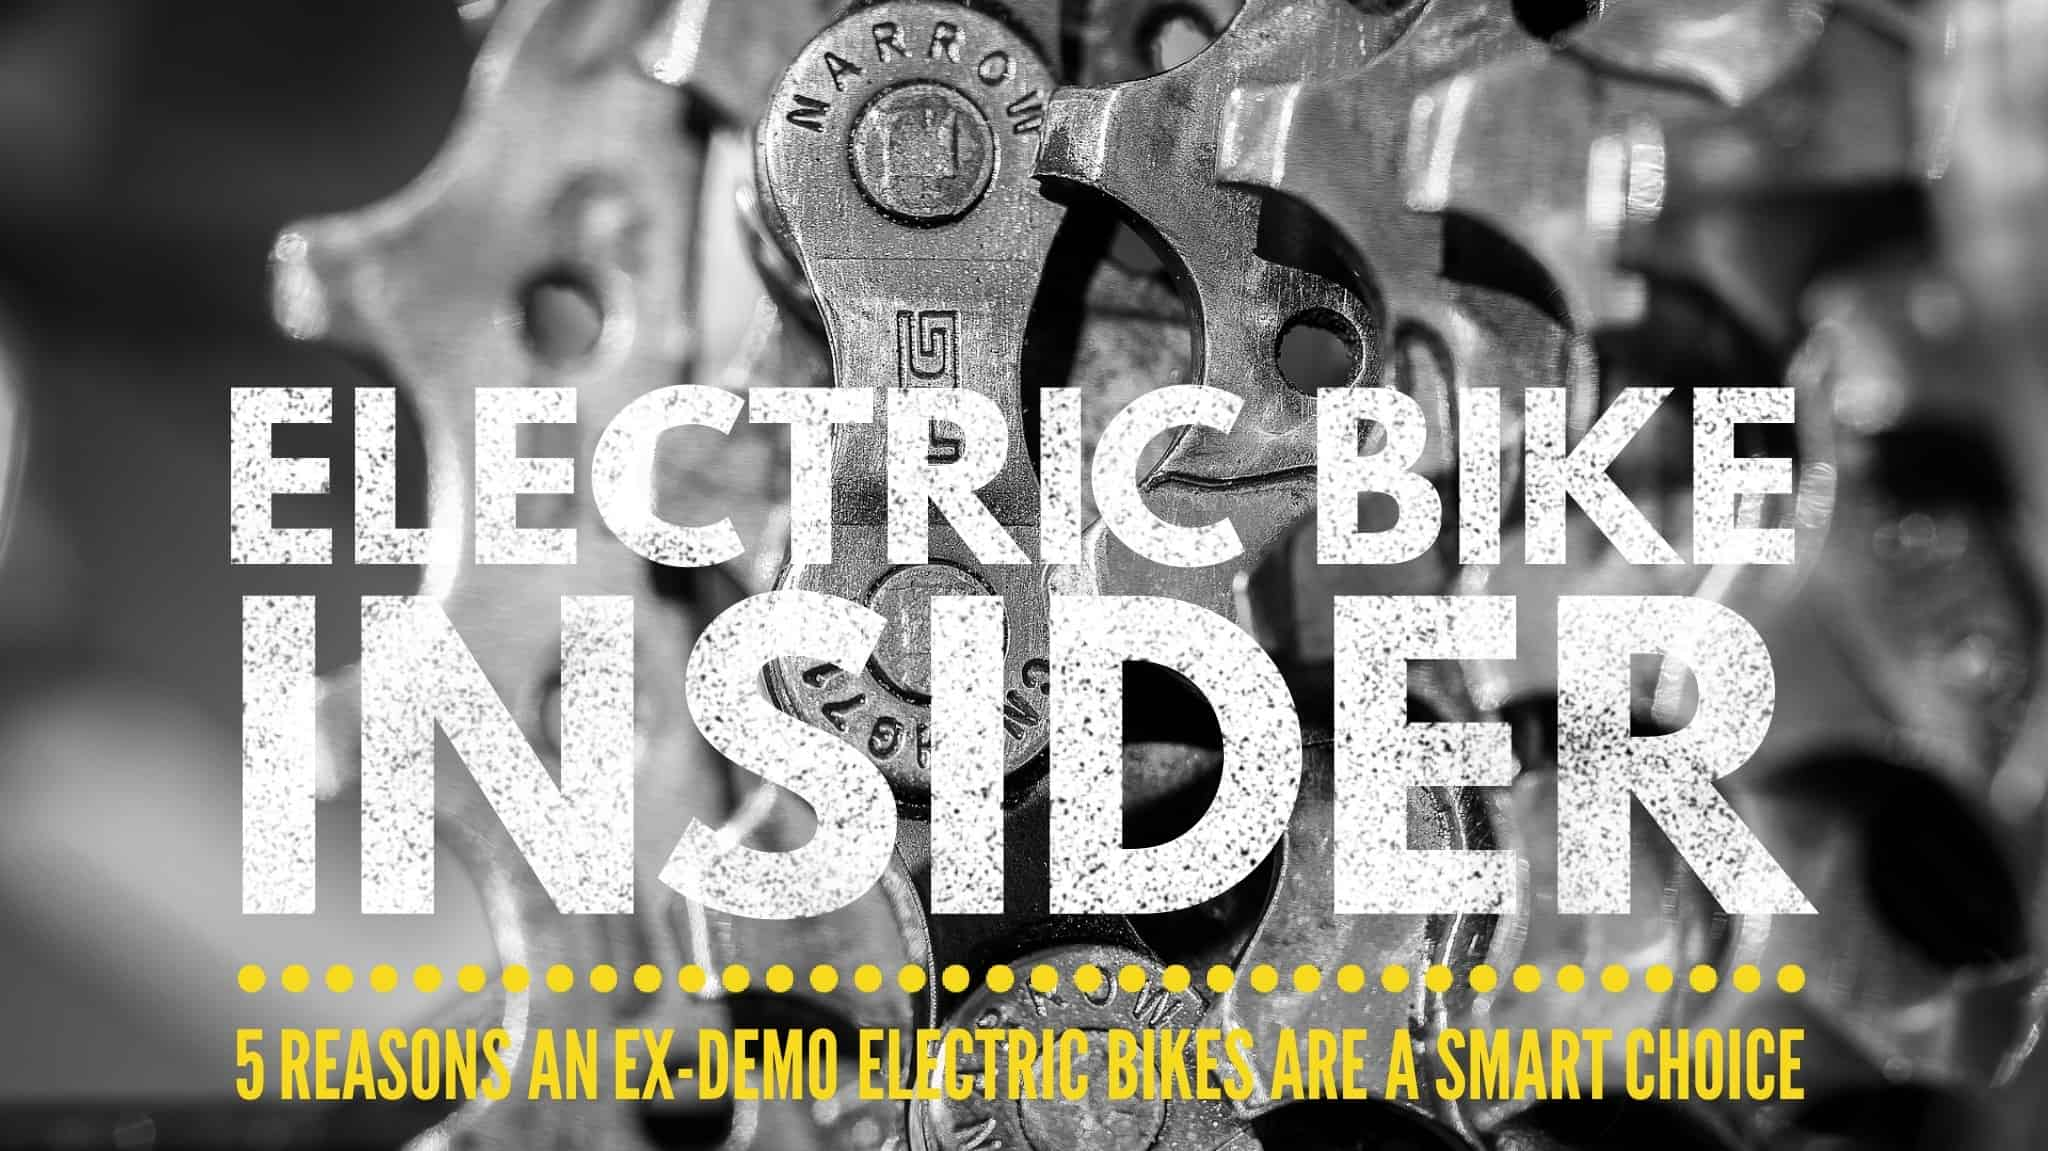 ex-demo electric bikes